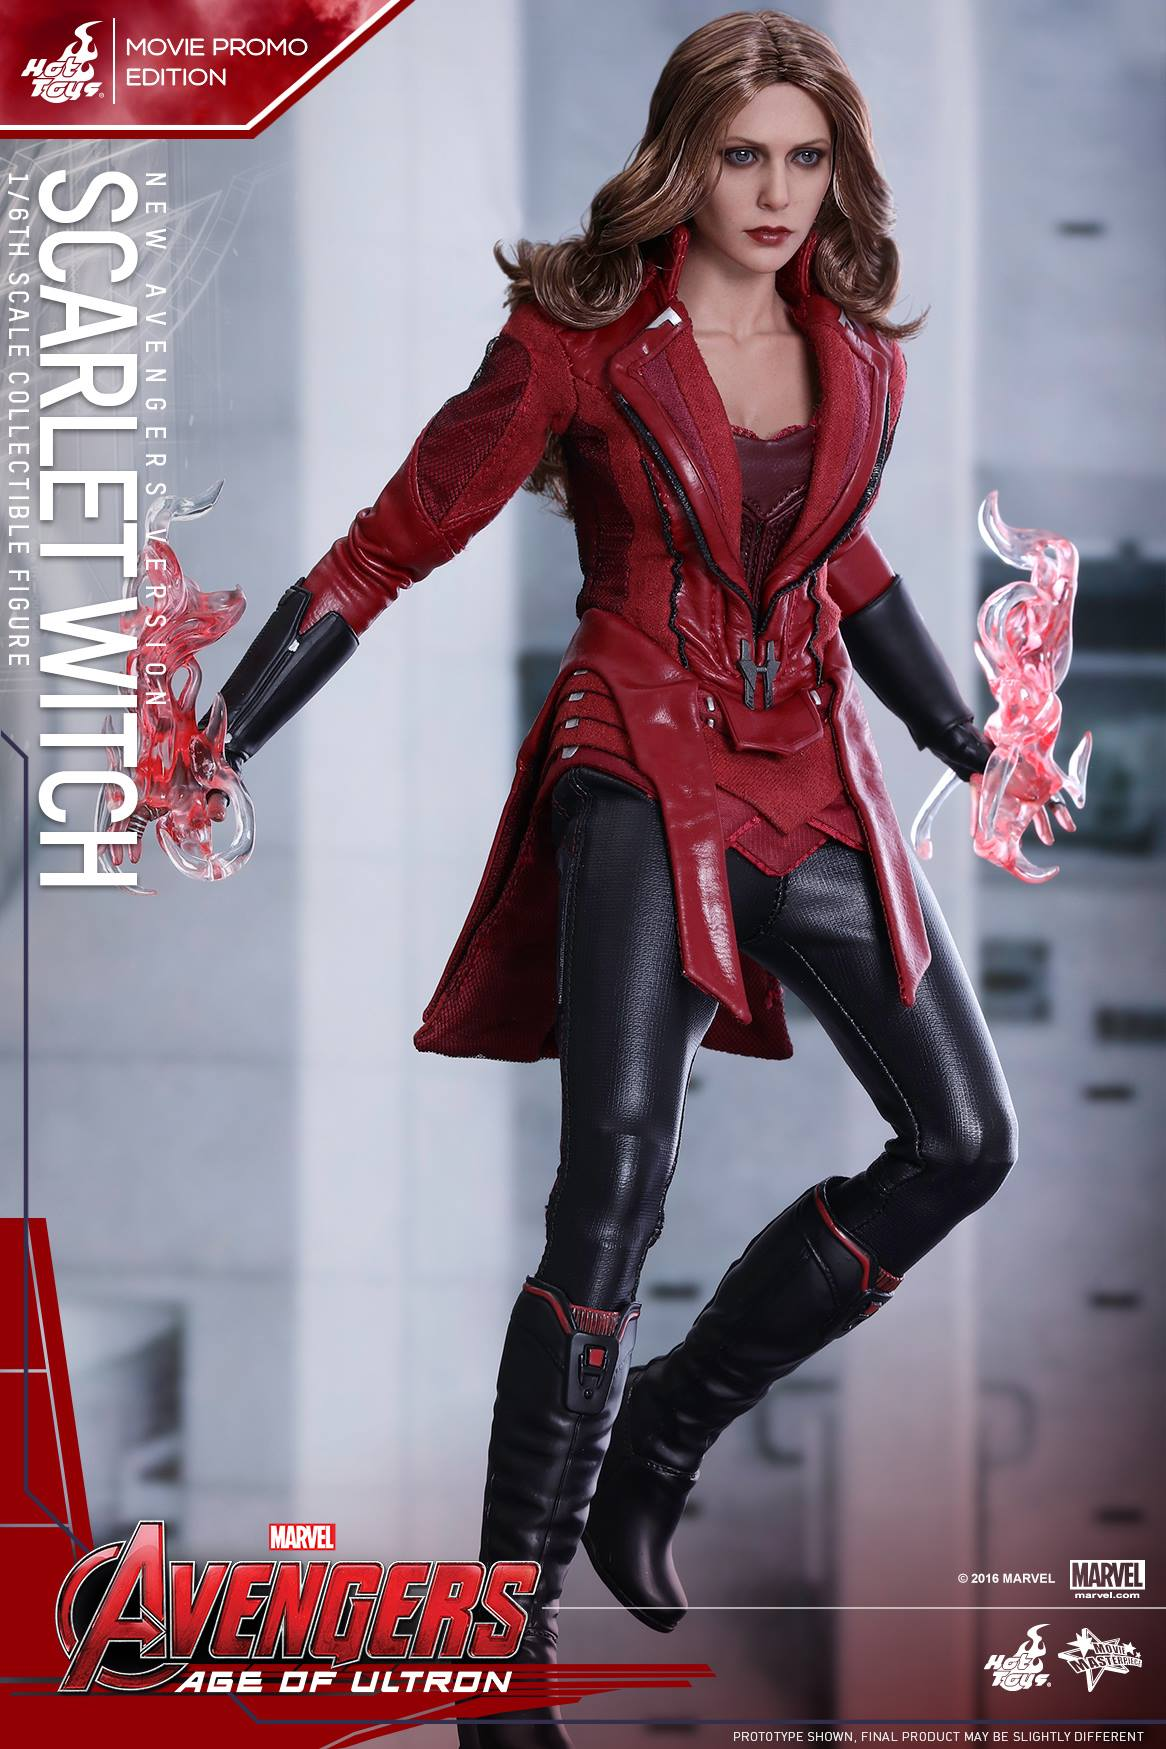 Age of Ultron Scarlet Witch New Avengers Version by Hot Toys - The ...